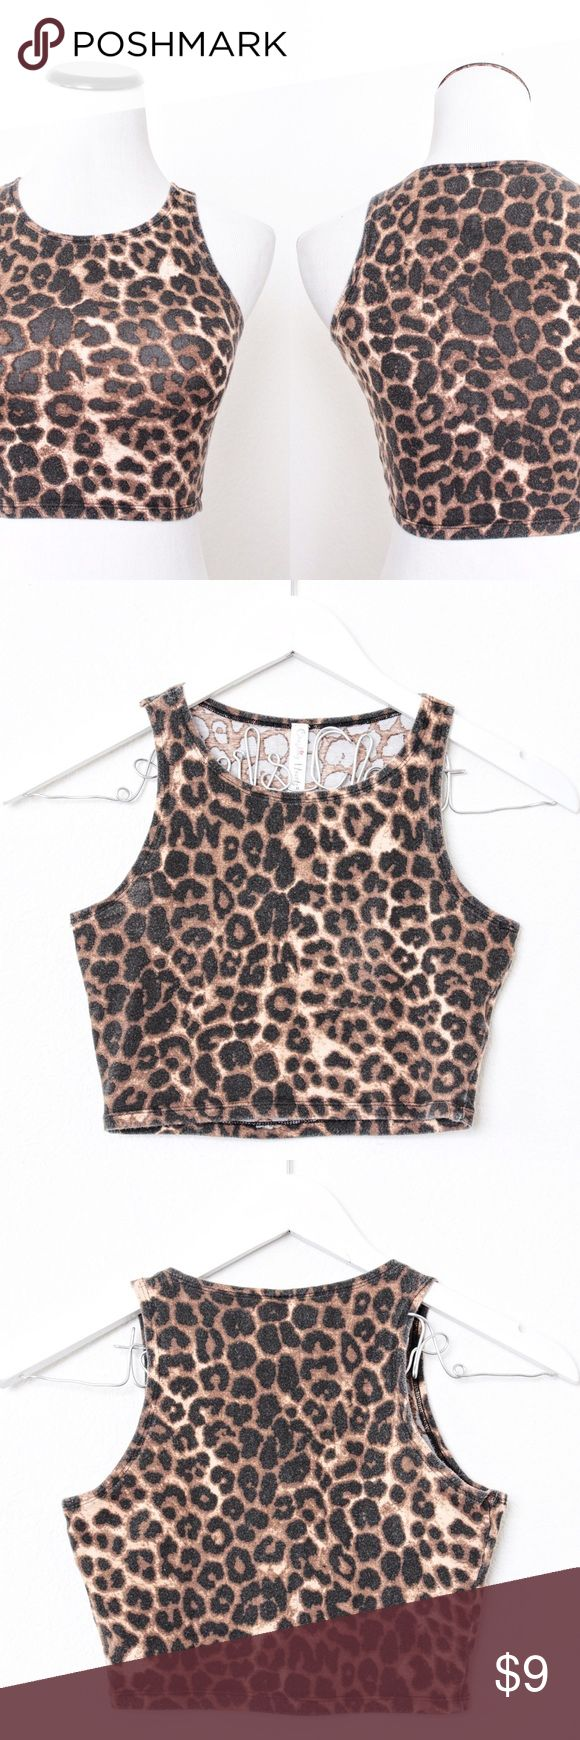 """Crushing Hearts Cheetah Animal Print Crop Top Crushing Hearts ⑊ Size S  ⌁ Measurements: 13"""" length 13.5"""" bust  ⌁ Material: 95% cotton 5% spandex  ⌁ Condition: Used. A little faded.  Comment below if you have other questions. Please make all offers using the """"offer"""" button. No trades or PayPal. No holds (first come, first serve). Comes from a smoke-free/pet-free home. Not responsible for lost/damaged mail. All sales are final. ♡ Crushing Hearts Tops Crop Tops"""